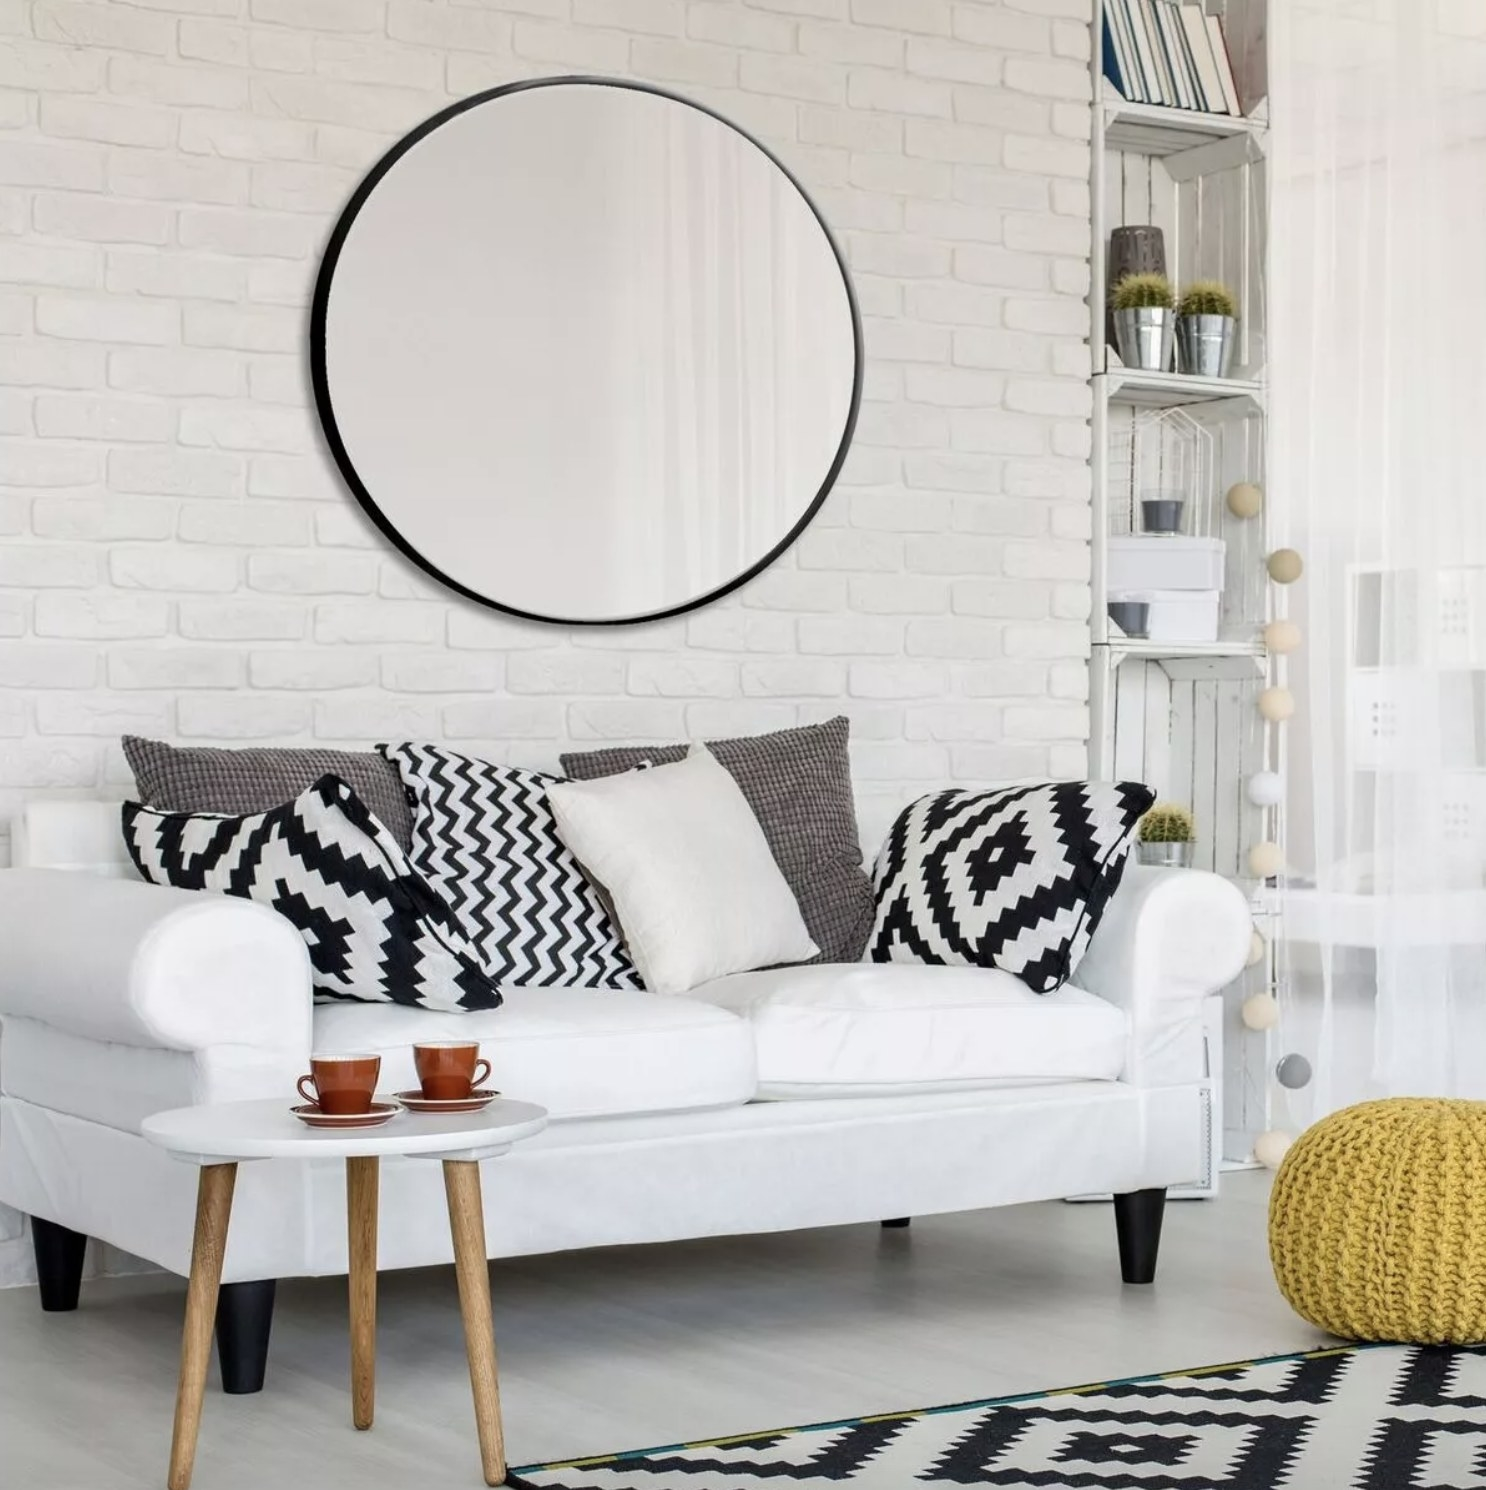 Mirror mounted on wall in living room